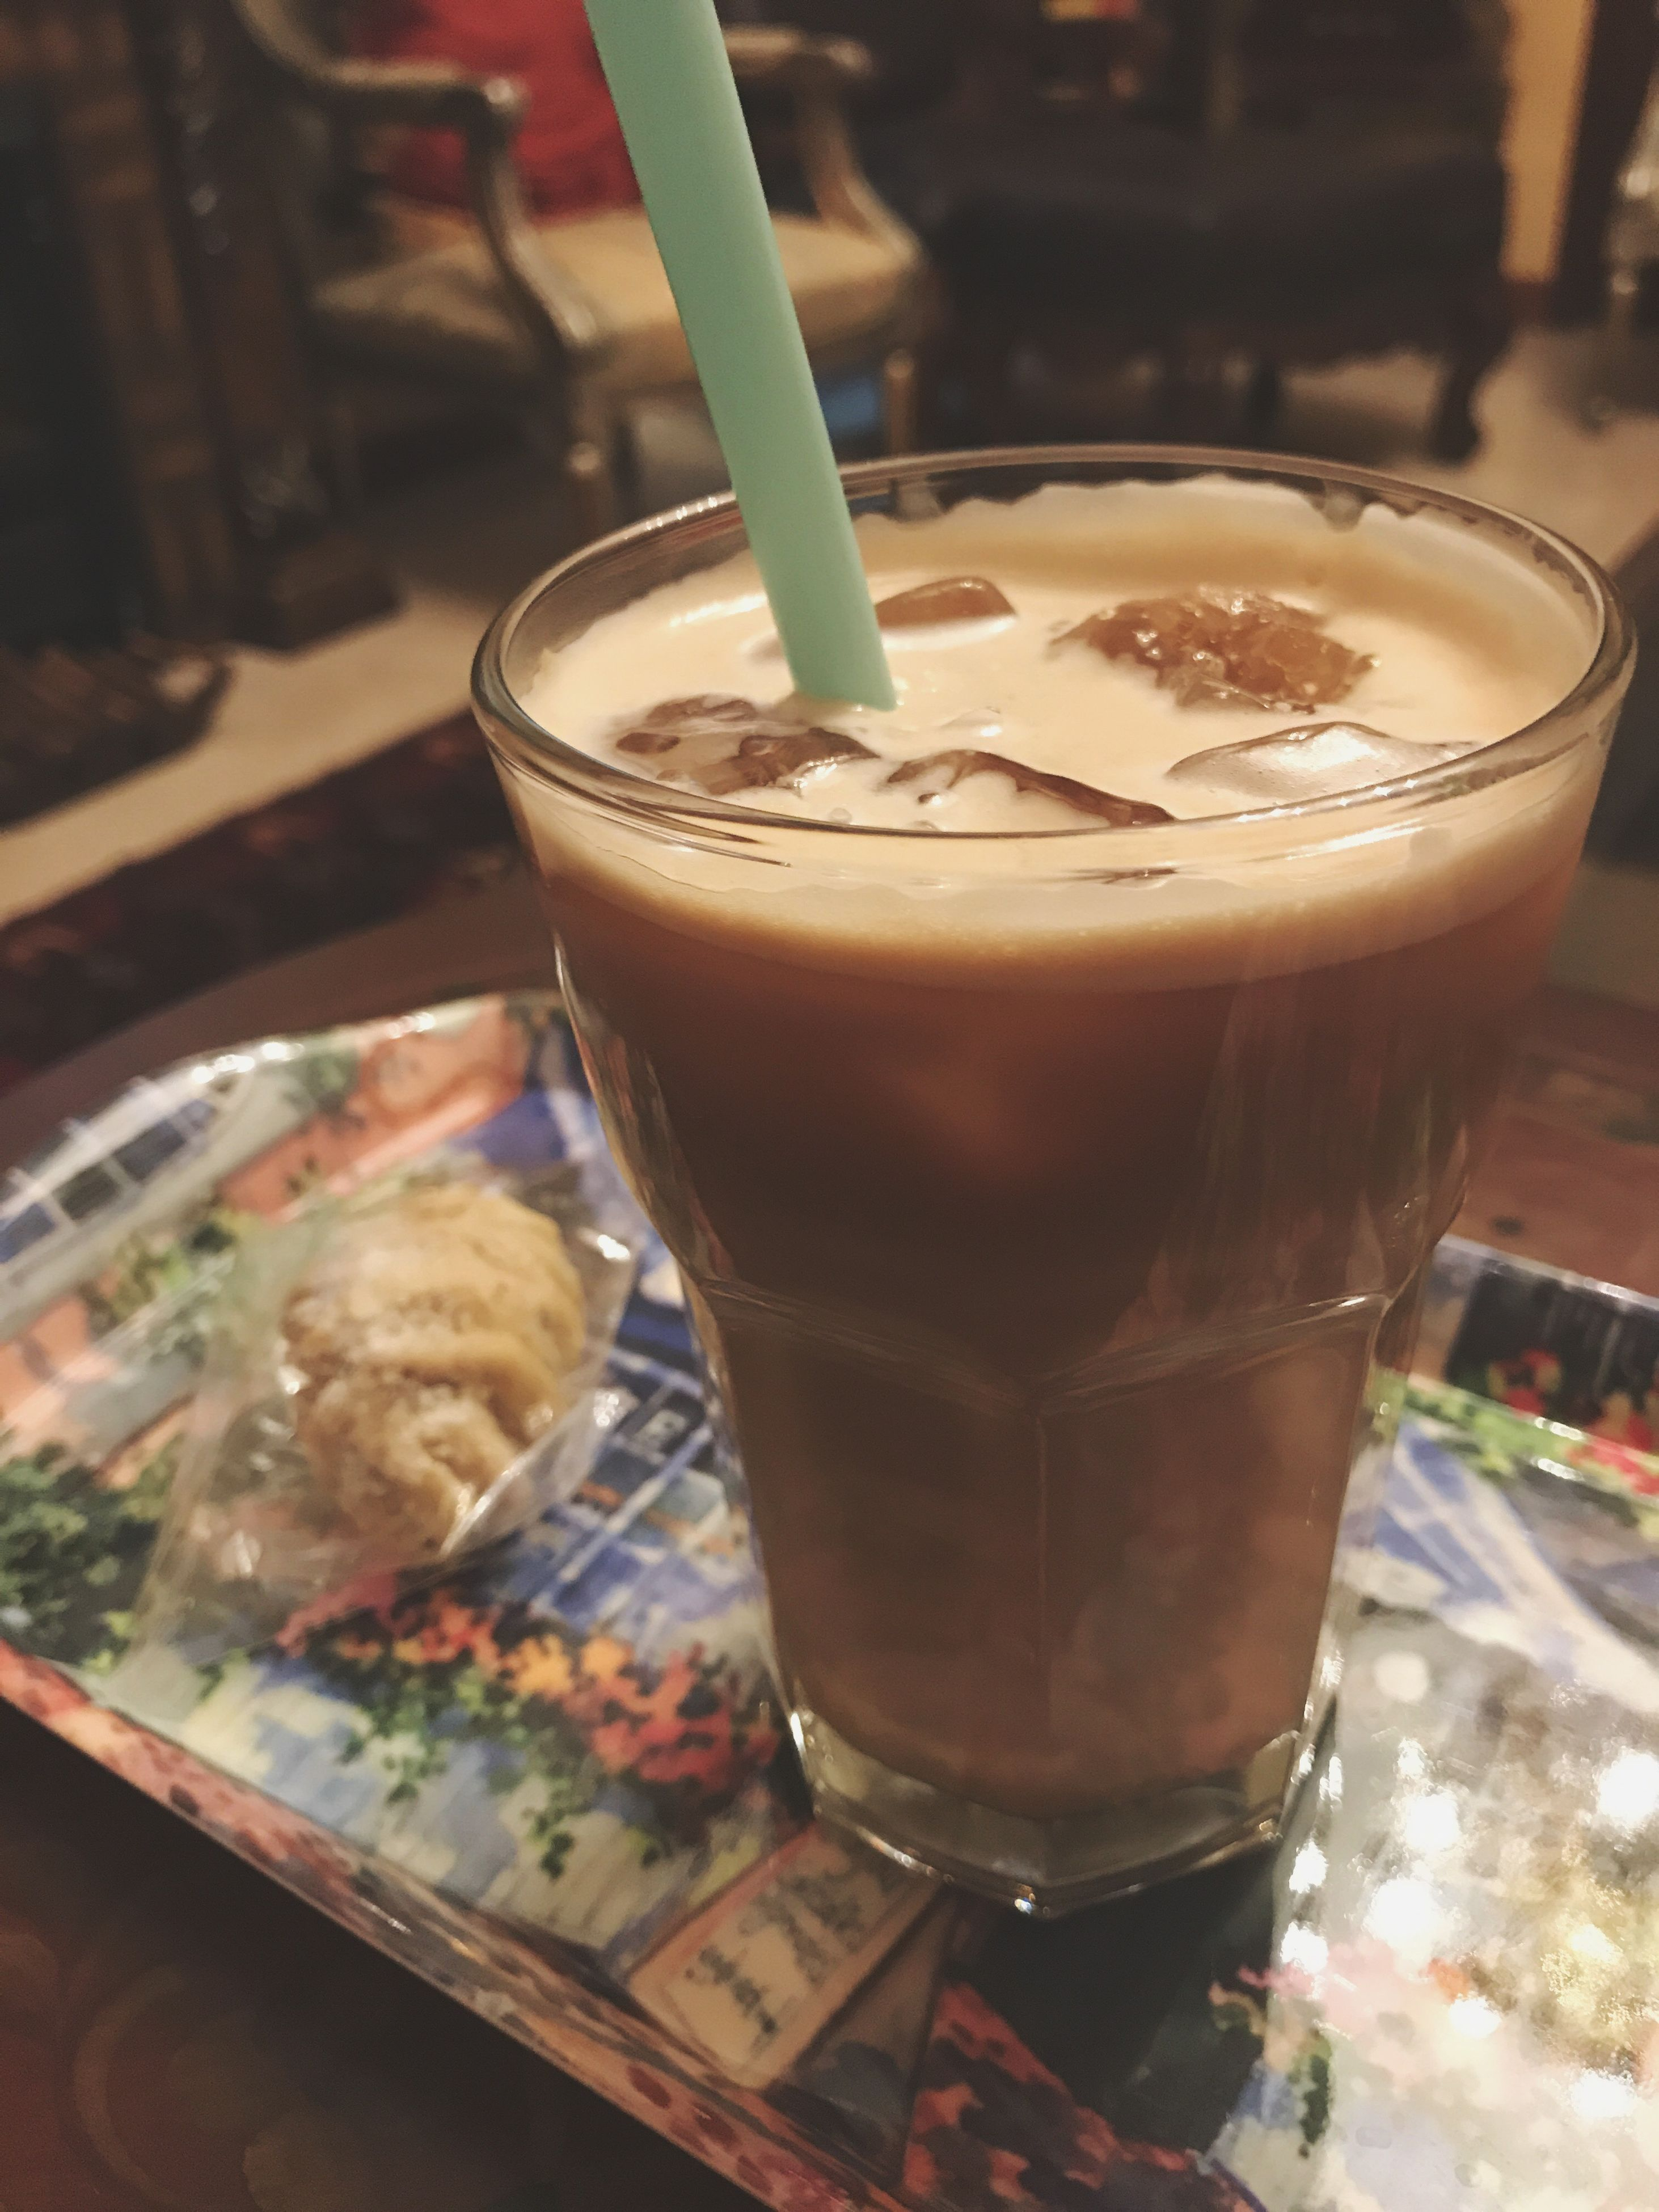 drink, coffee - drink, food and drink, refreshment, freshness, drinking straw, drinking glass, indoors, iced coffee, no people, milk, table, milkshake, healthy eating, food, close-up, frothy drink, day, ready-to-eat